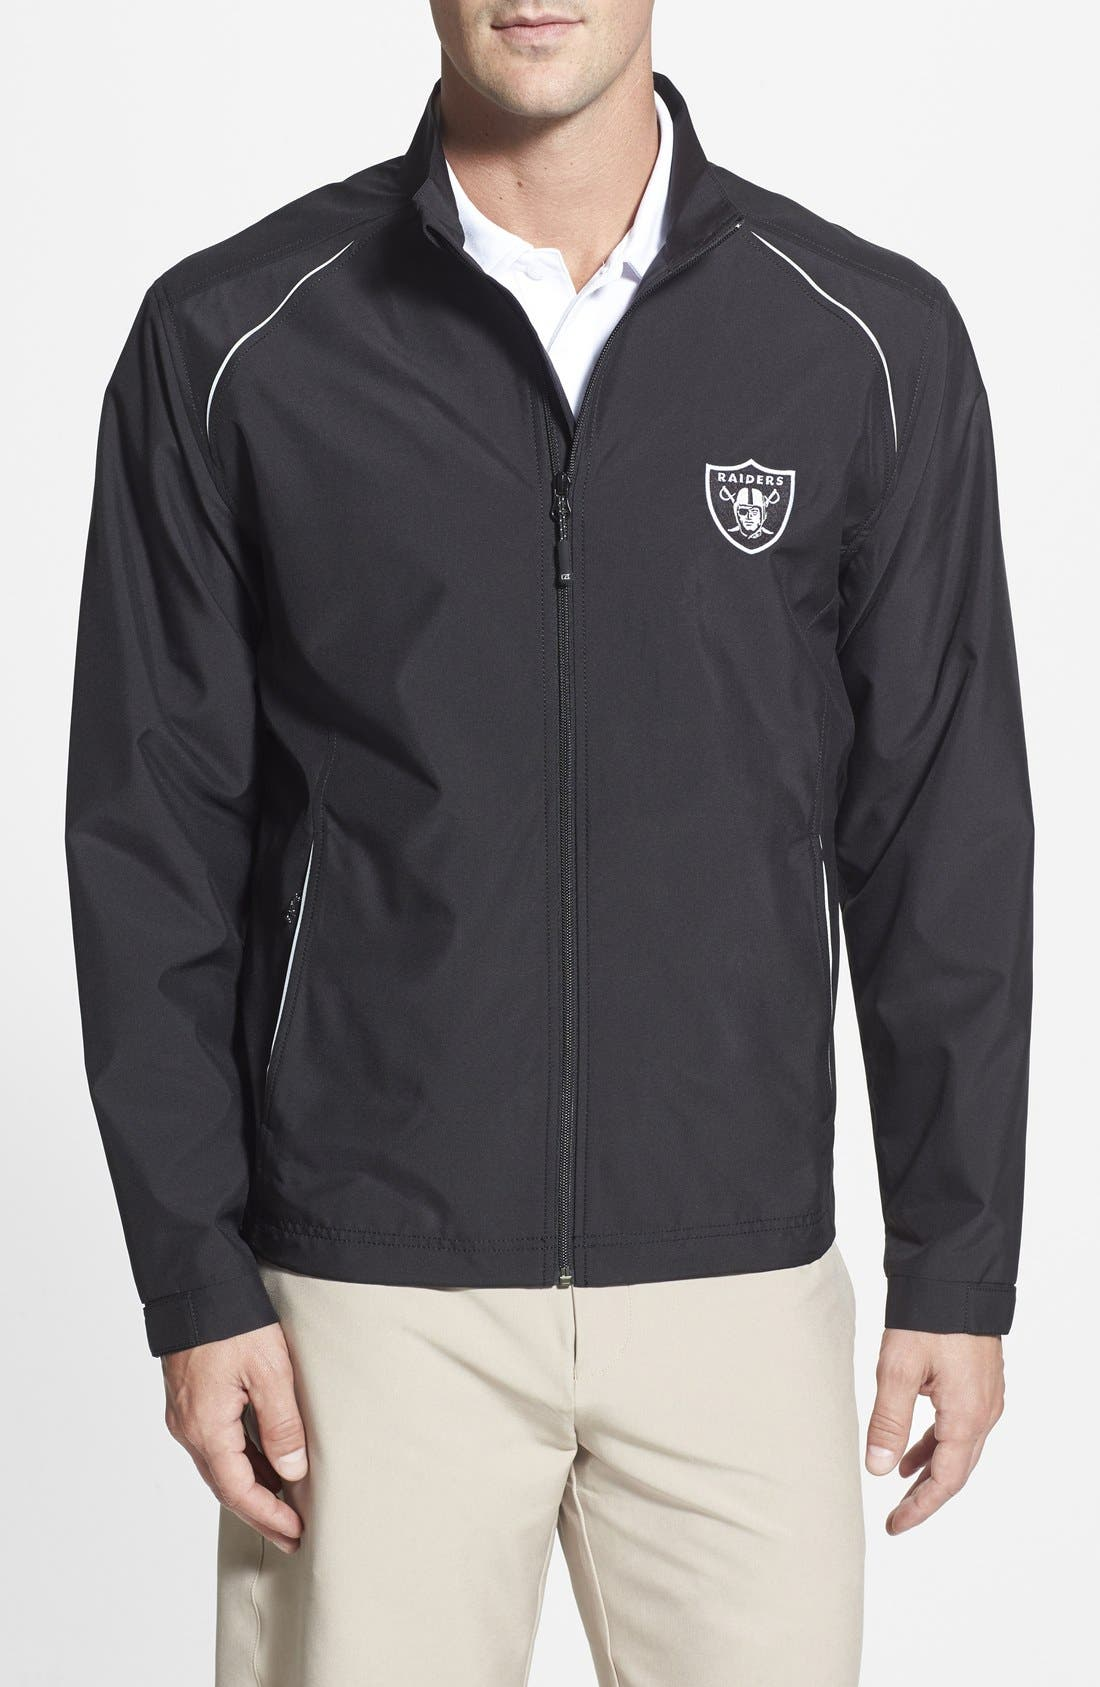 Main Image - Cutter & Buck Oakland Raiders - Beacon WeatherTec Wind & Water Resistant Jacket